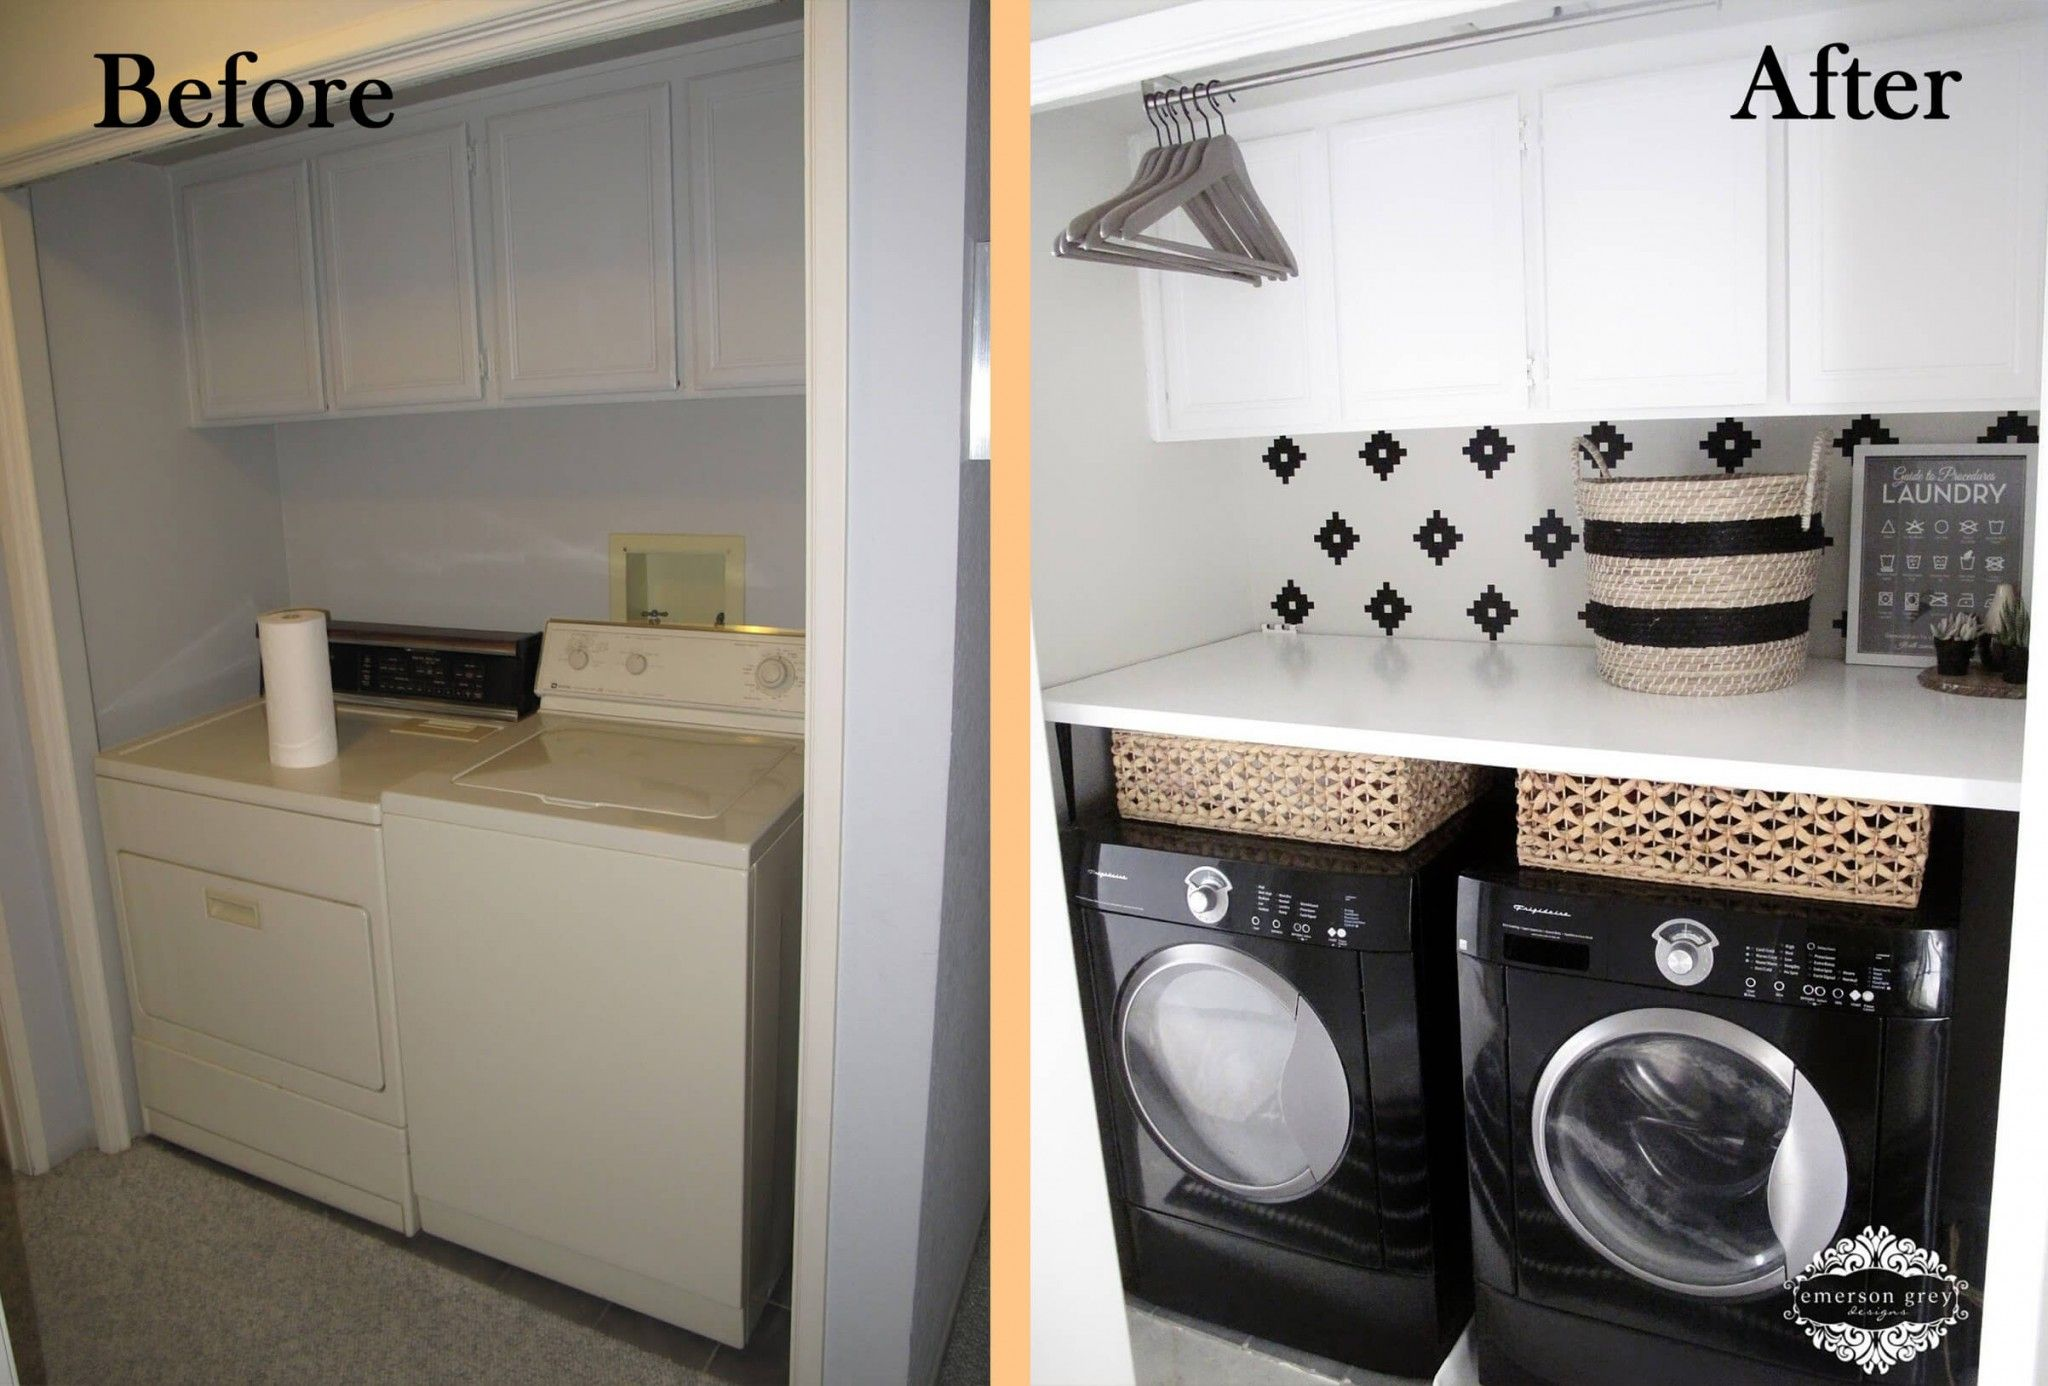 23 Before And After Budget Friendly Laundry Room Makeover Ideas That Will Amaze You Laundry Room Makeover Laundry Room Decor Diy Small Laundry Room Makeover